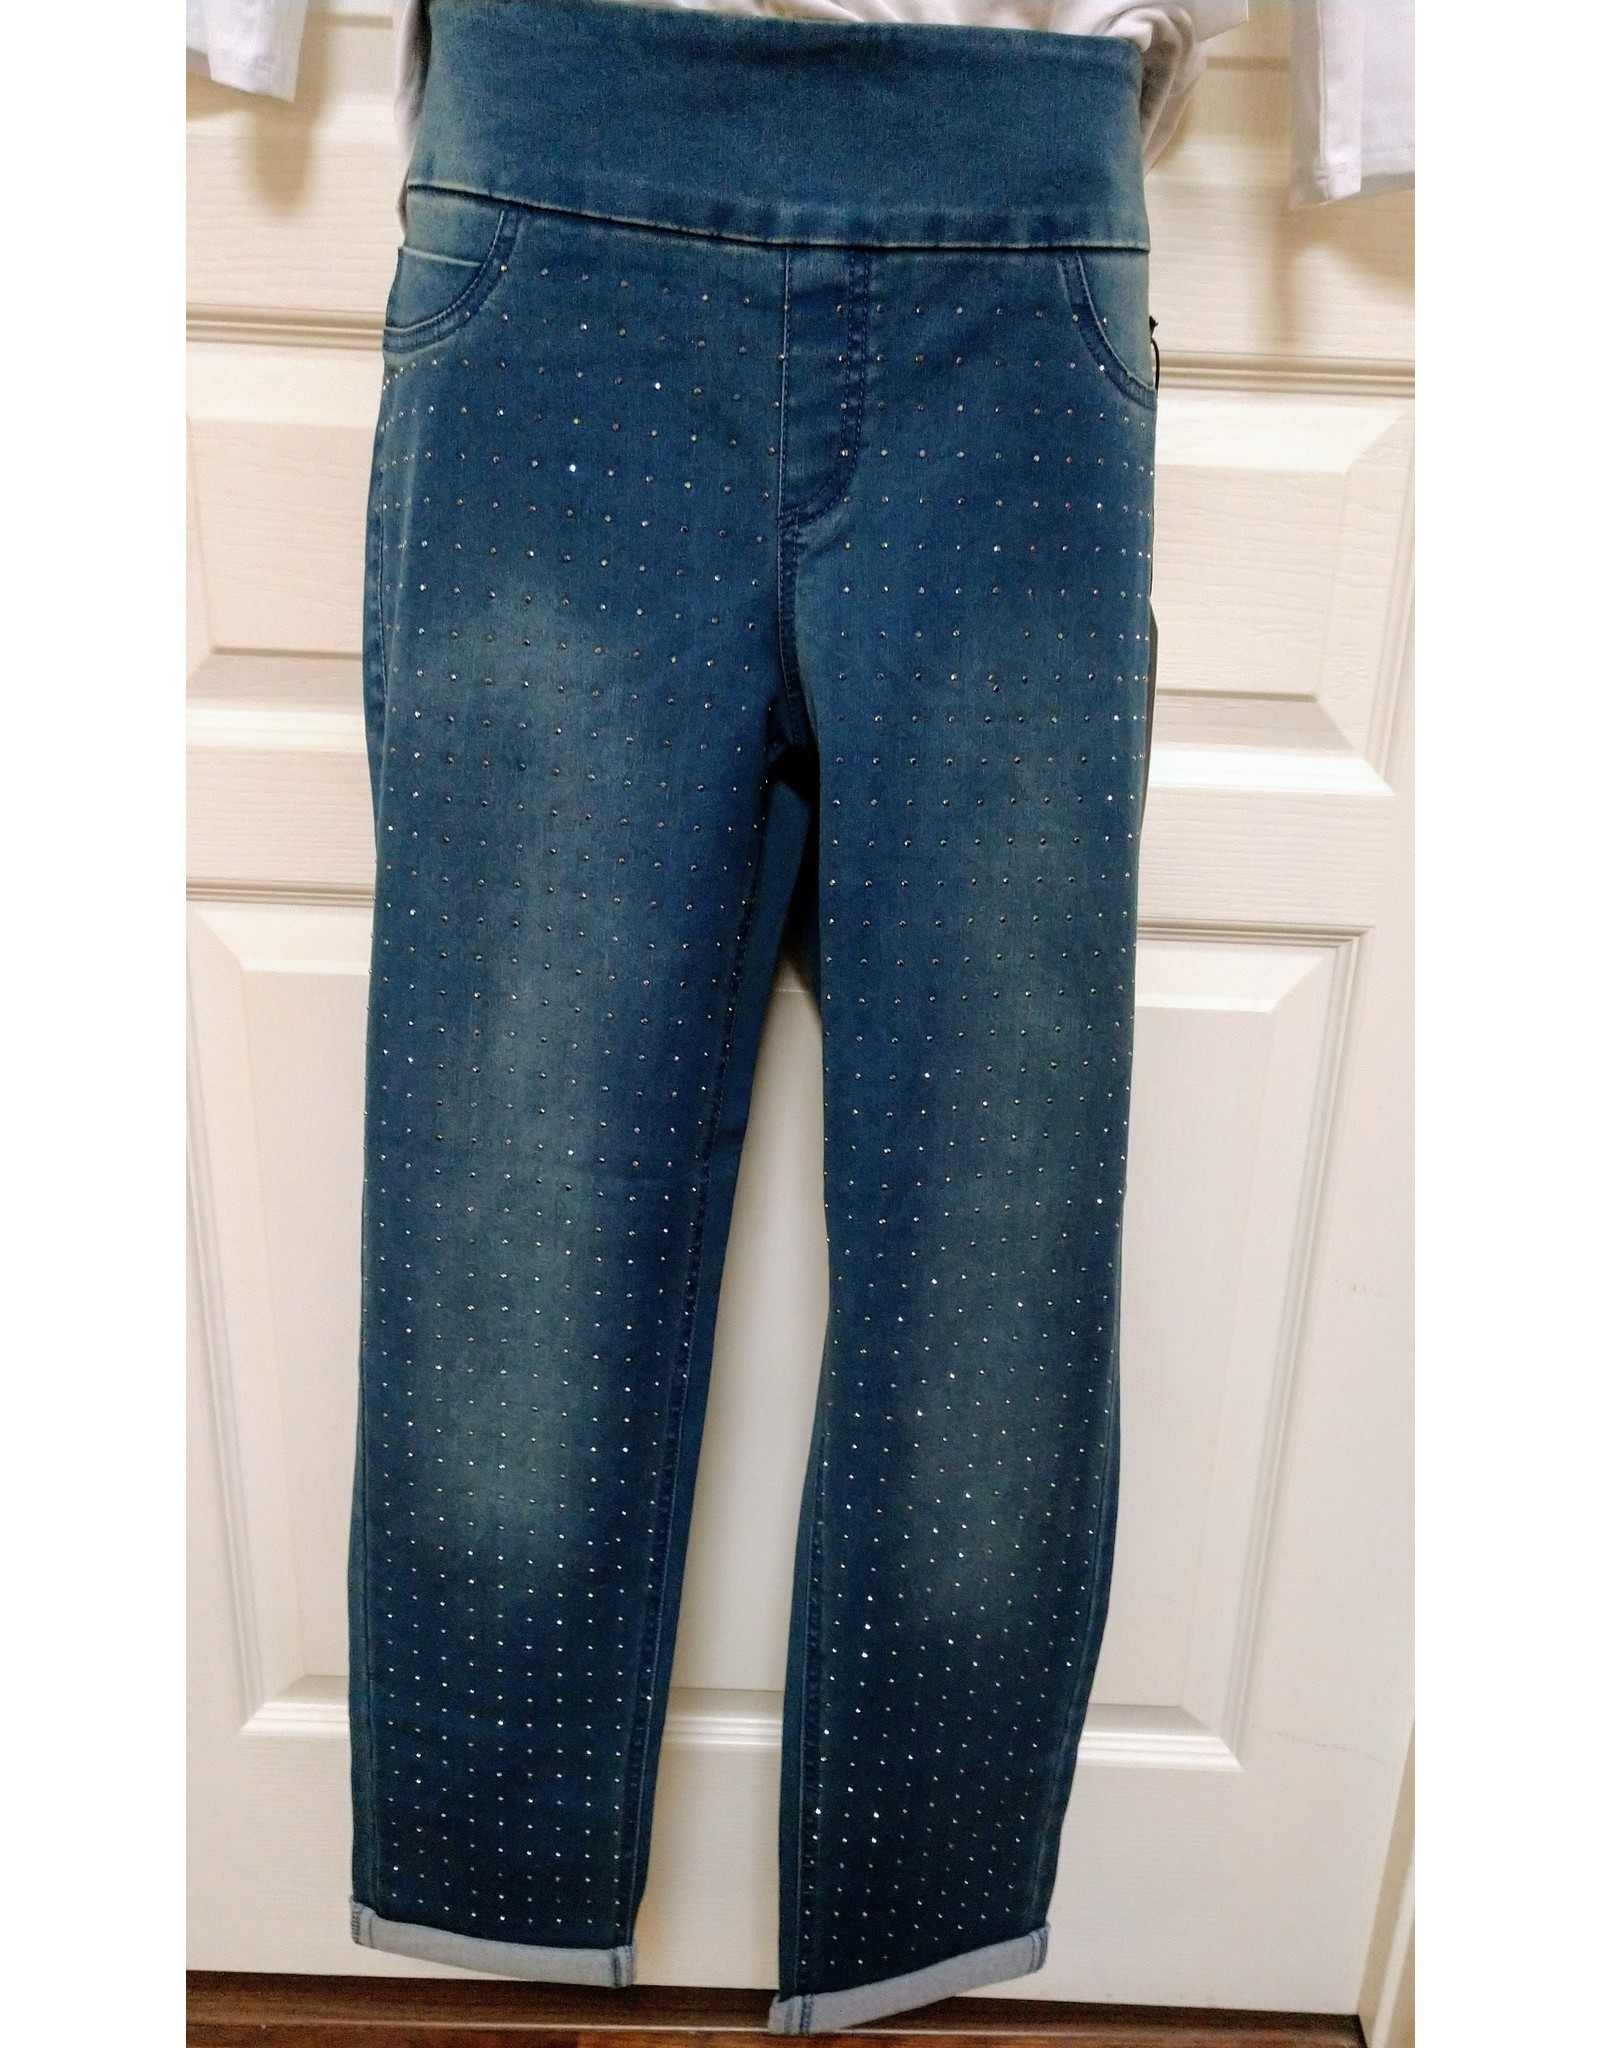 Lulu B All-Over Rhinestone Stretch Ankle Jeans